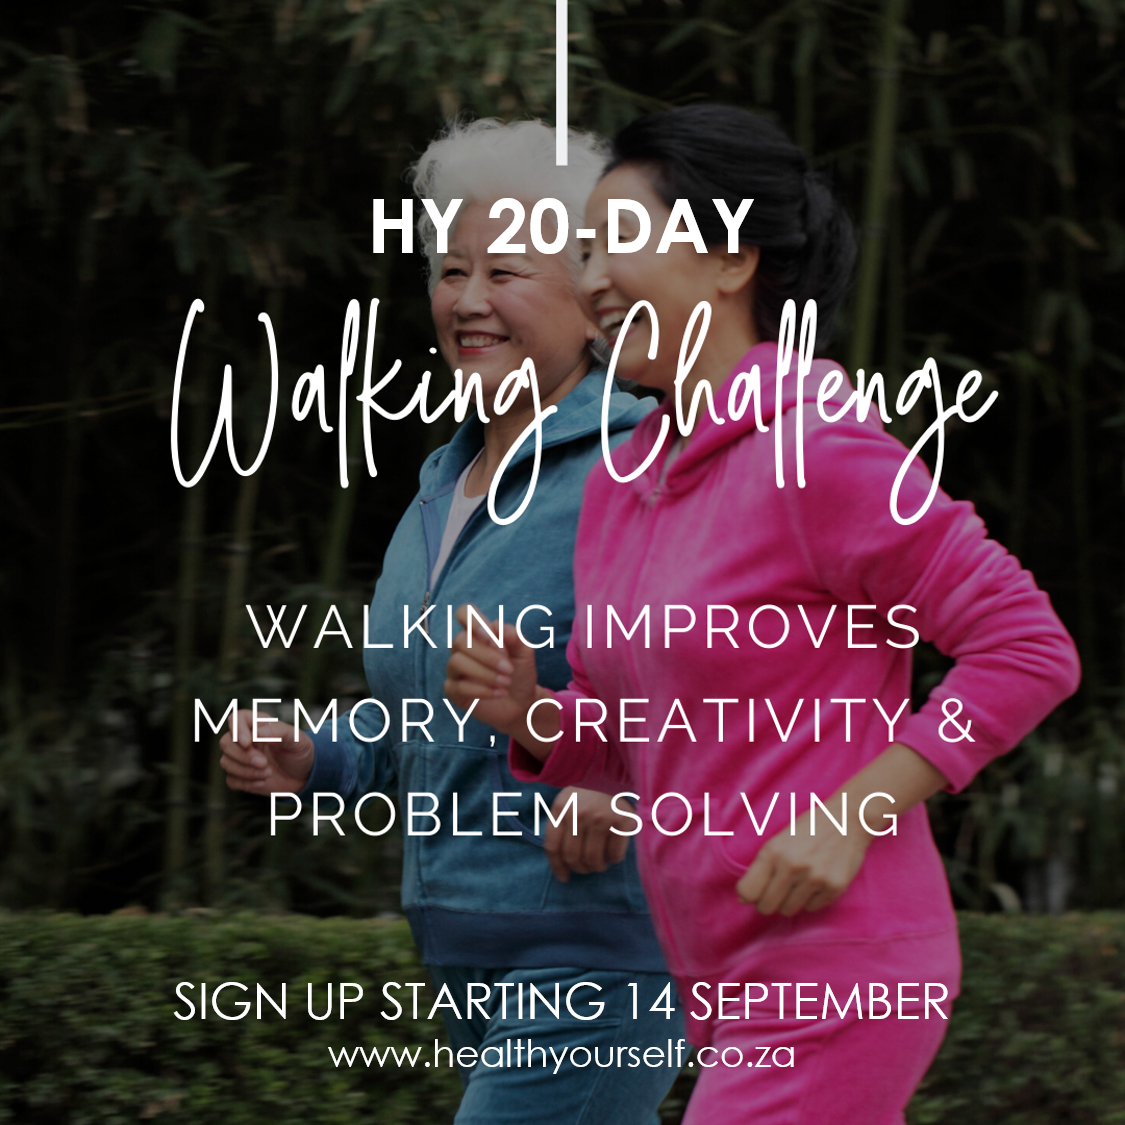 21-Day Walking Challenge